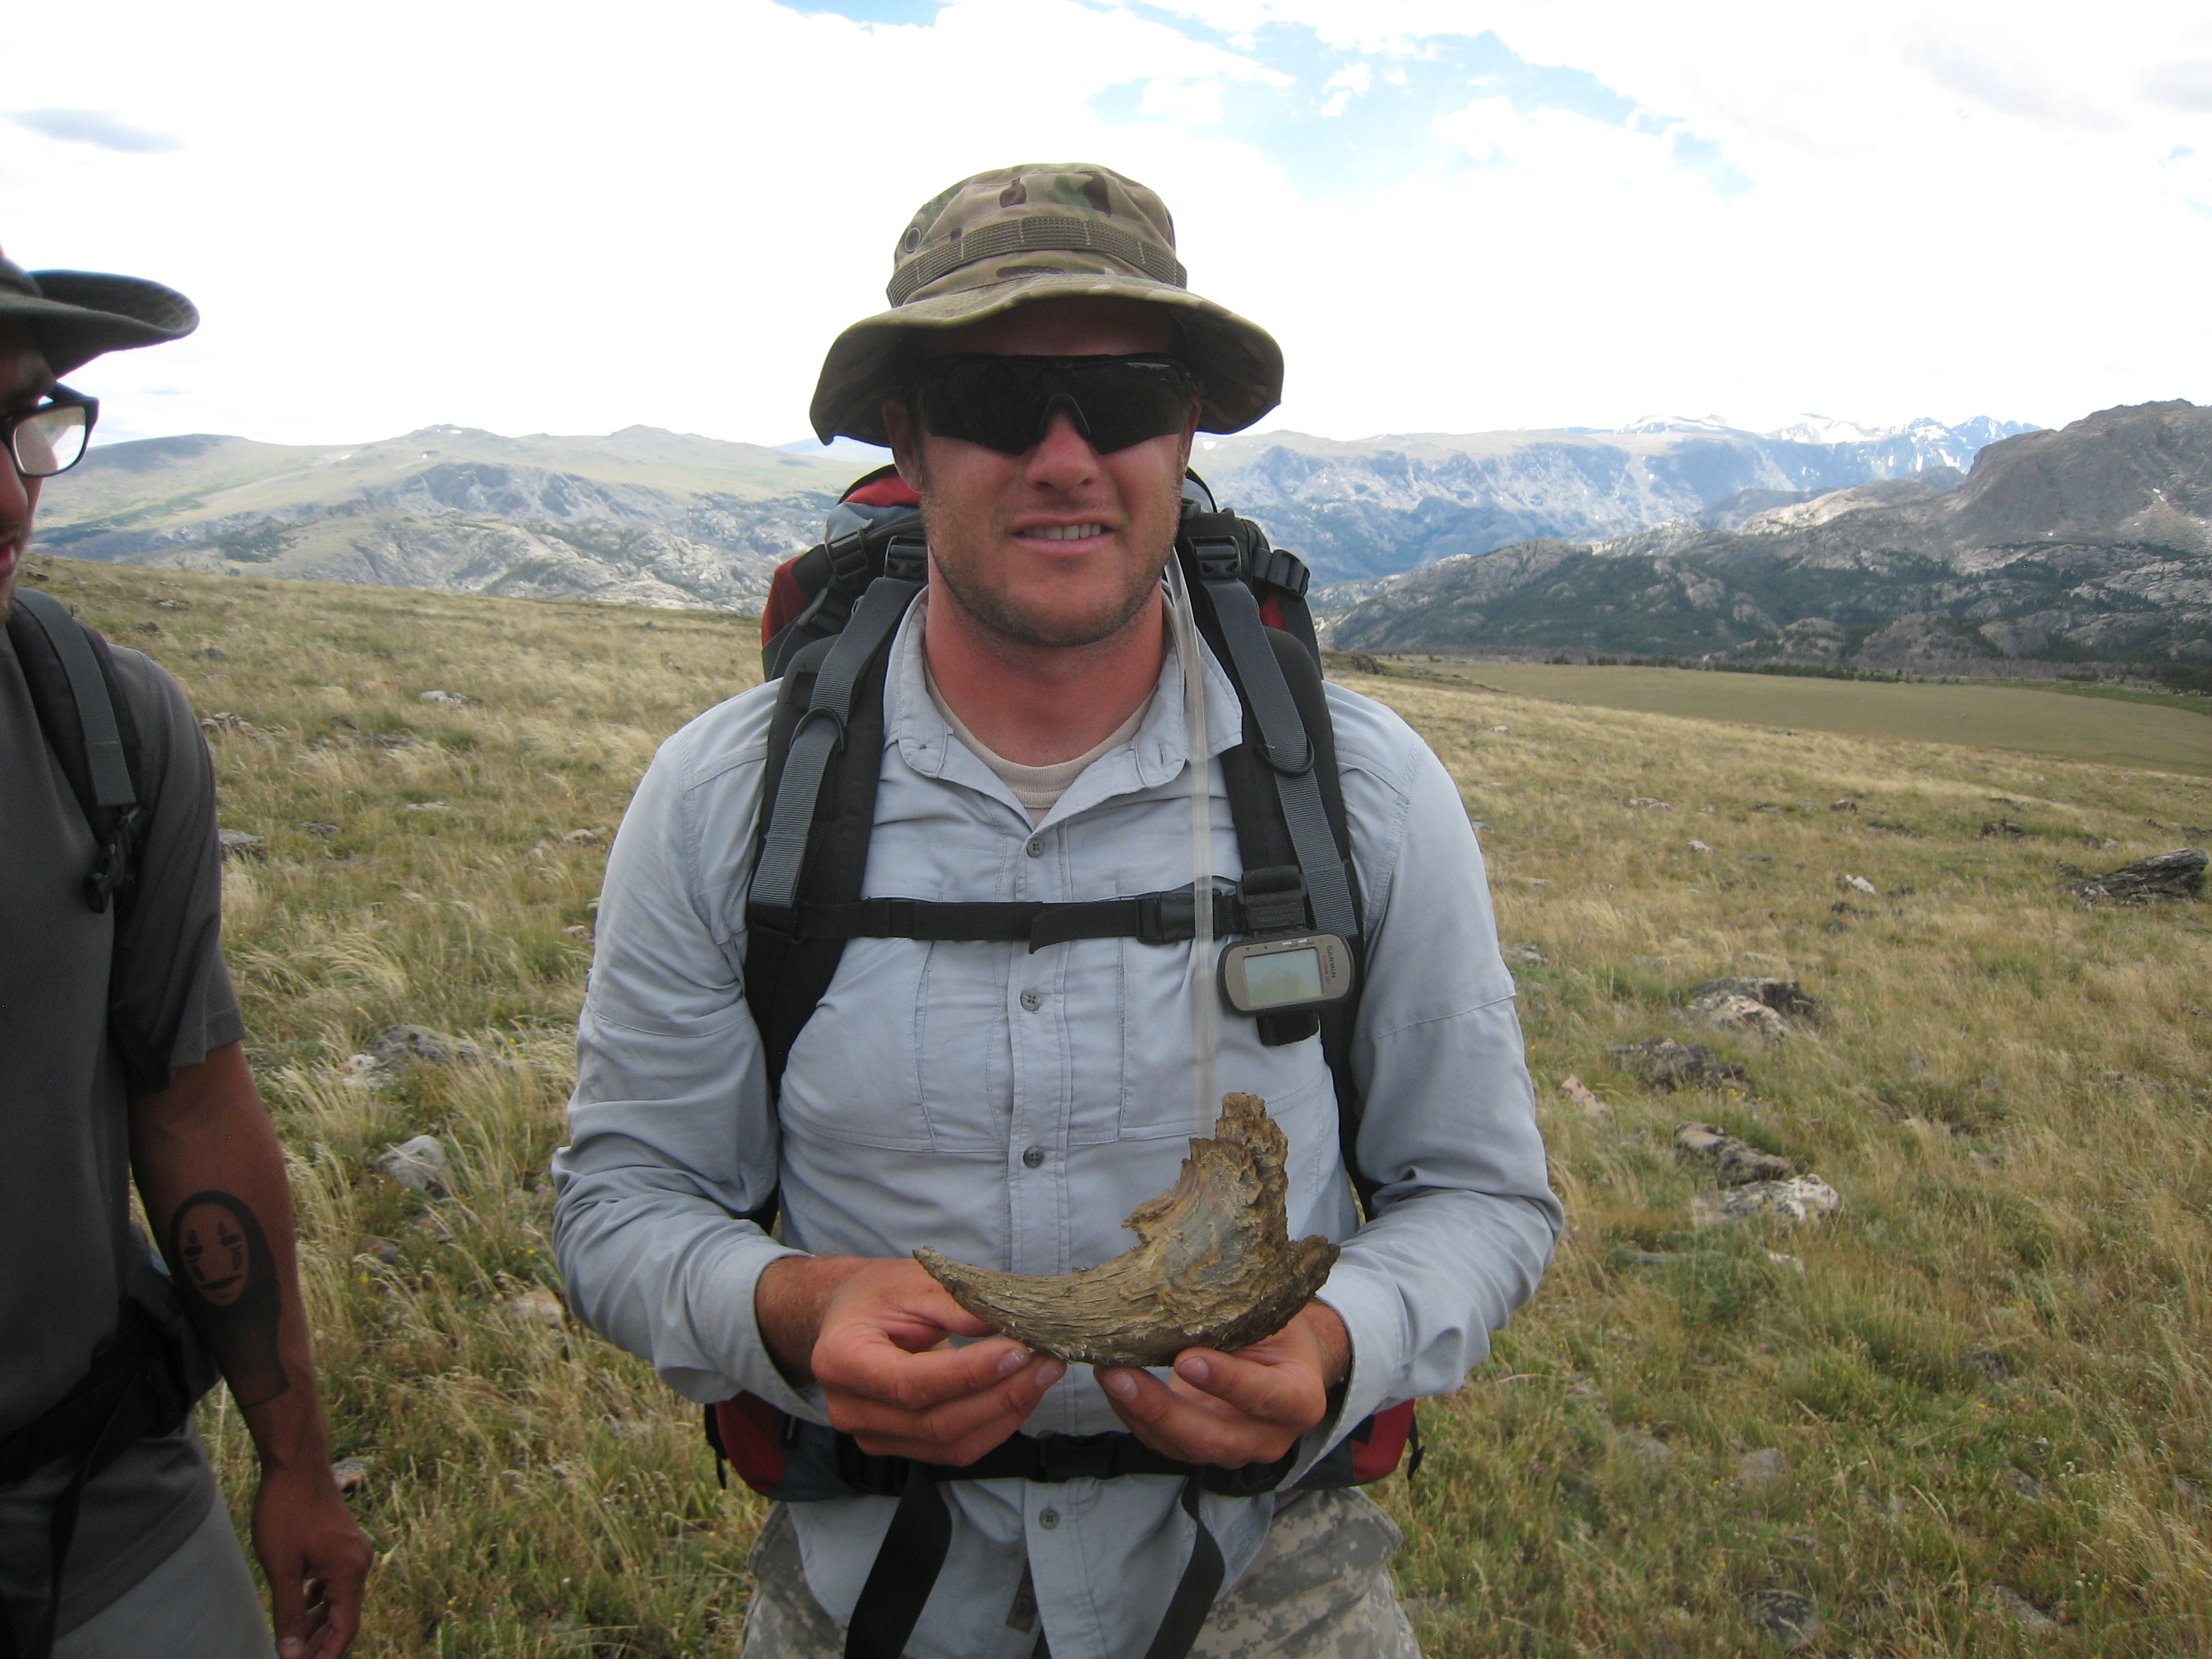 September 12 - Central Wyoming College Field School - Wyoming State